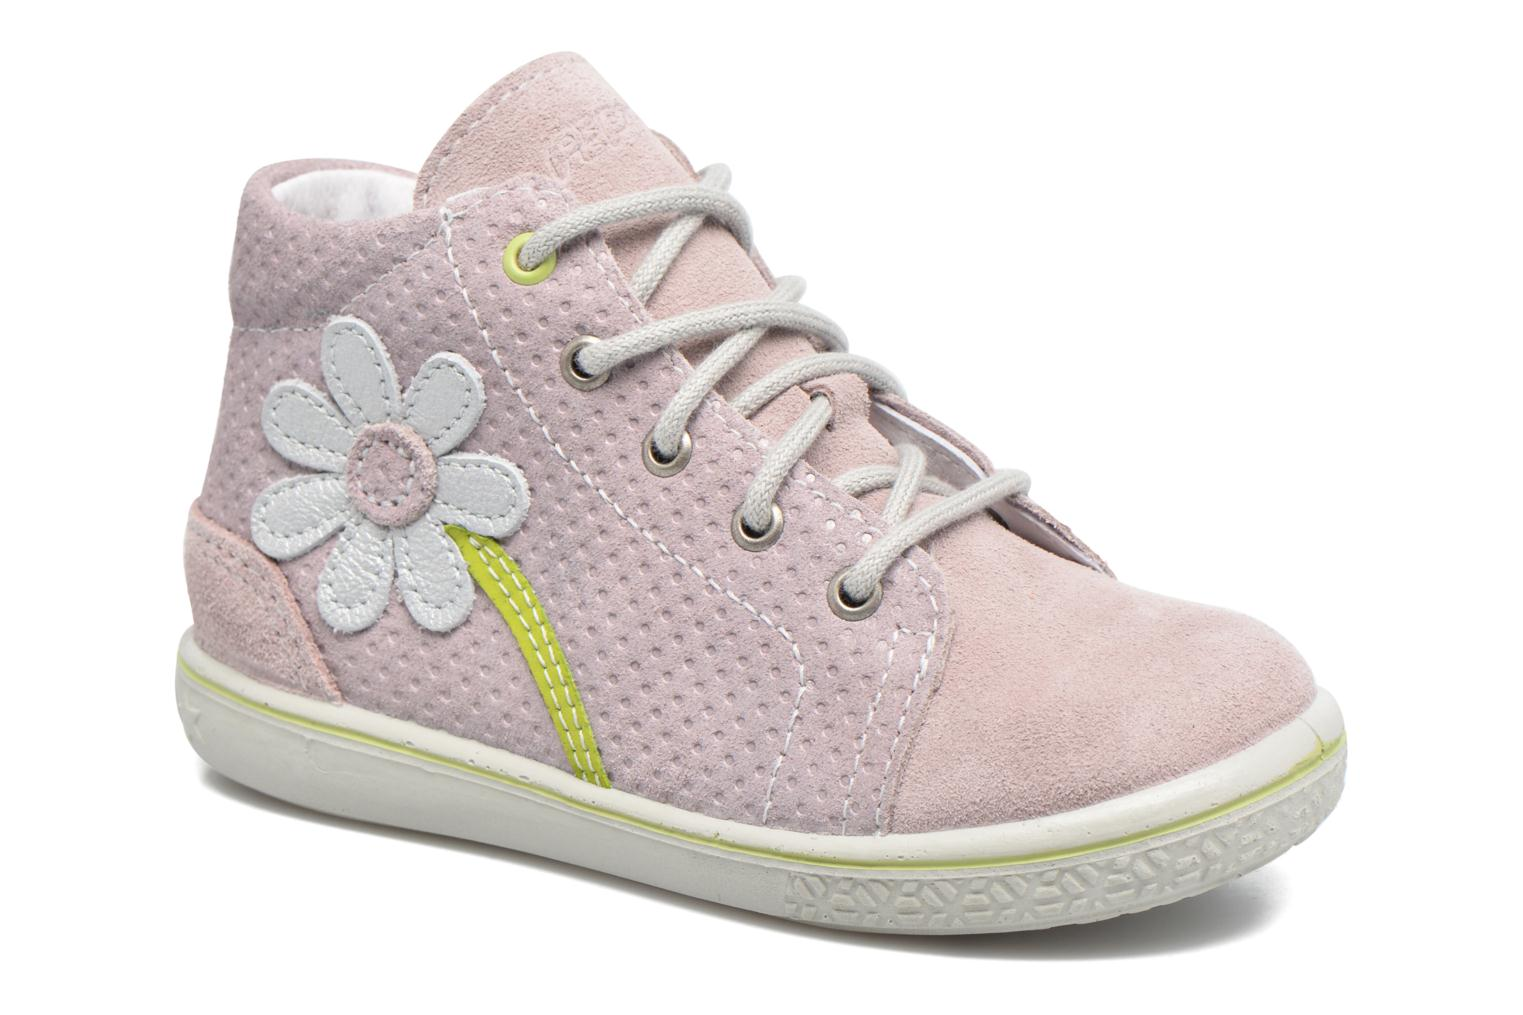 Sneakers Lissi by PEPINO